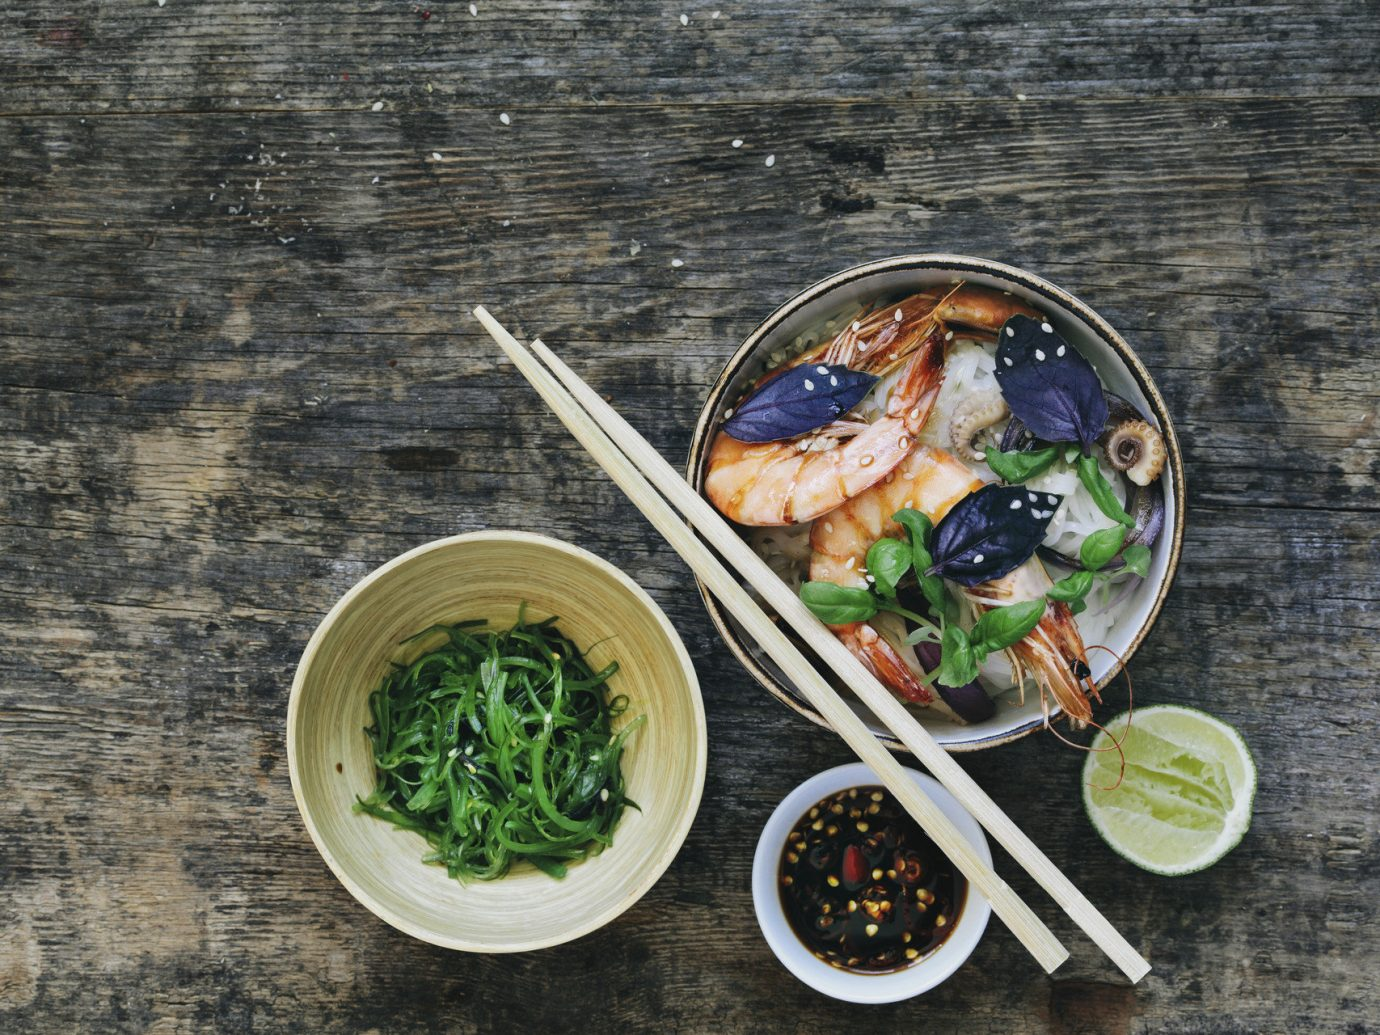 Offbeat food dish meal produce fish cuisine lunch vegetable several